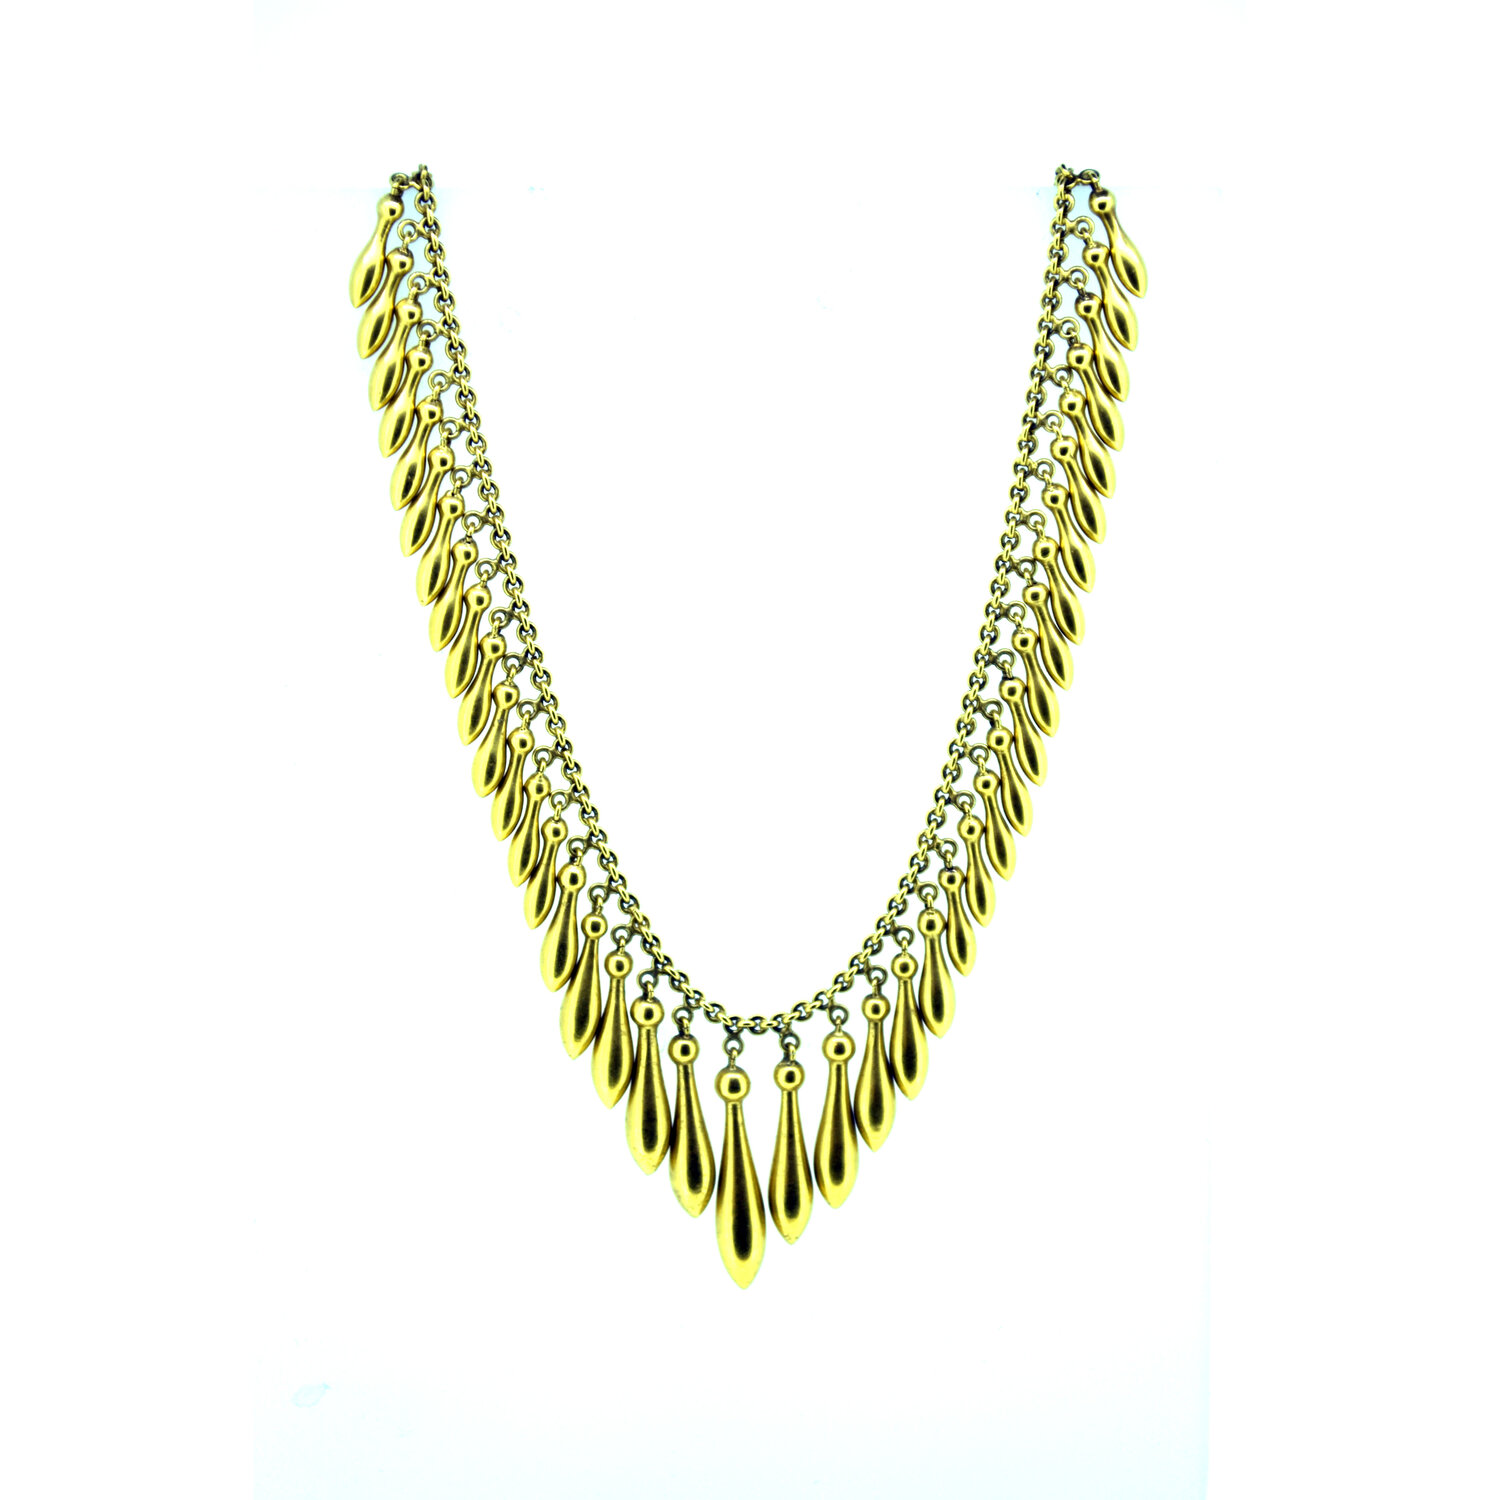 1940s Etruscan Revival brass and glass bead fringe 19 inch necklace nlvn870